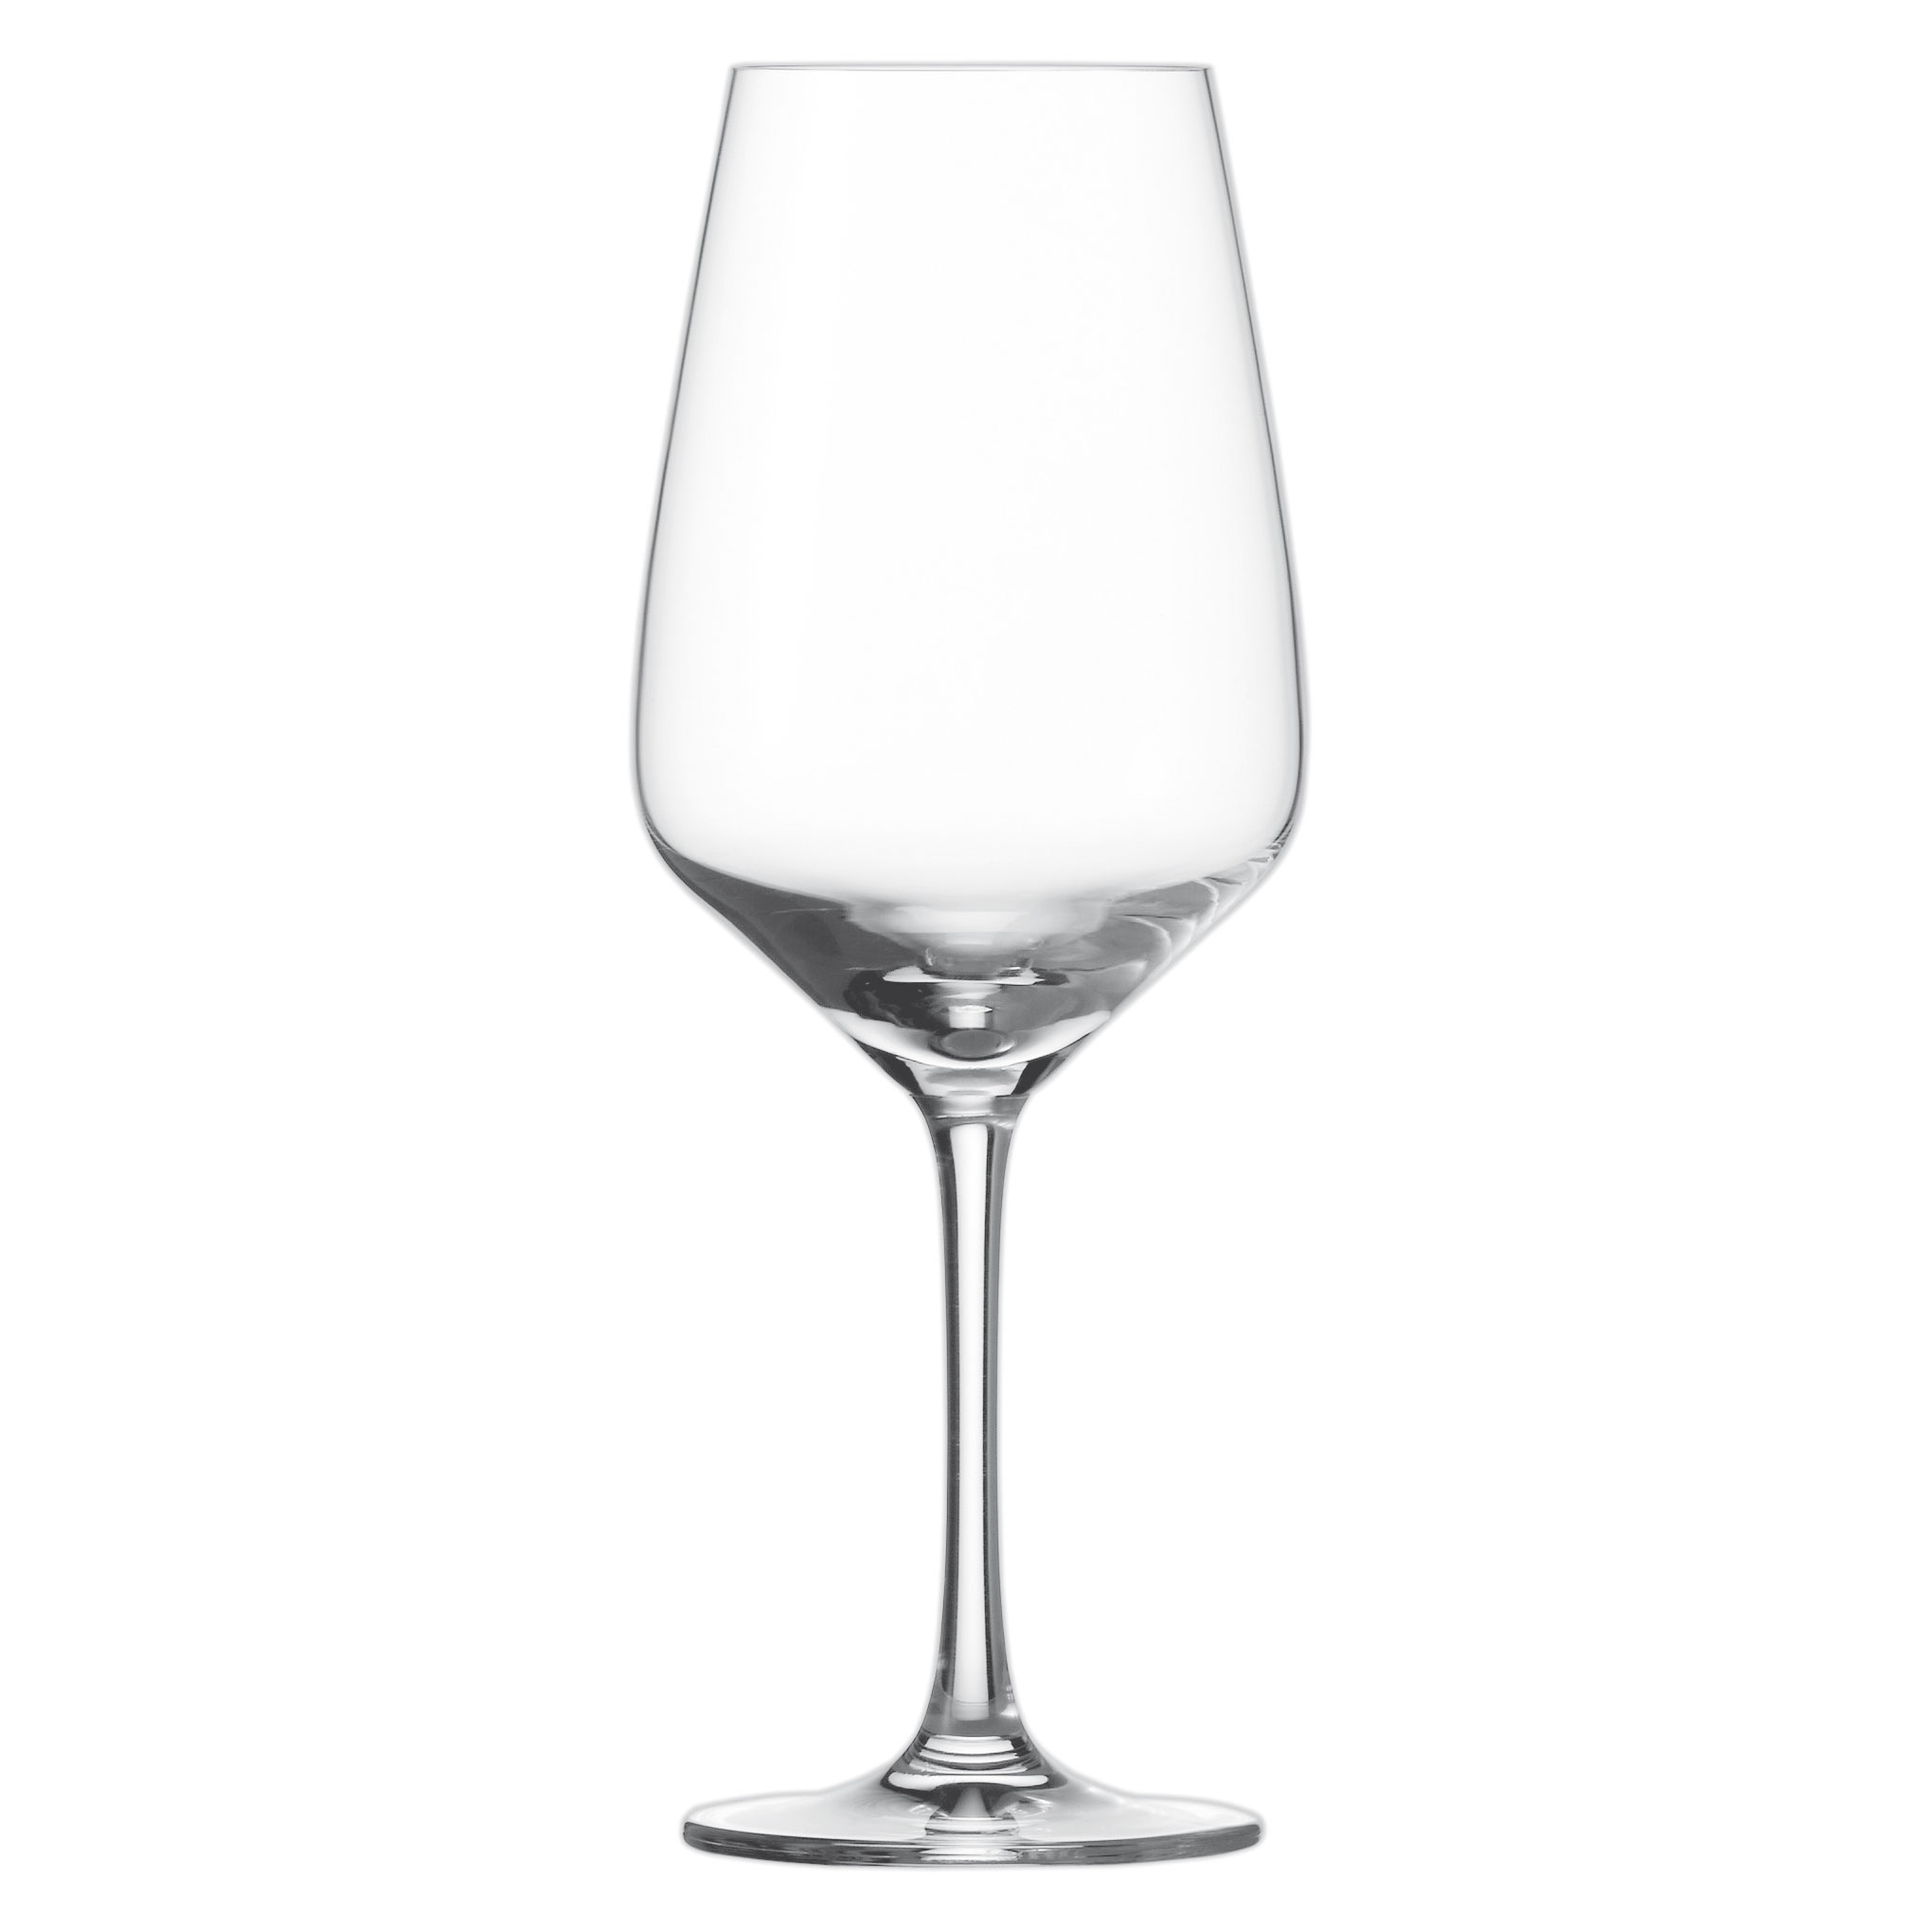 Weinkelch Glas Schott Zwiesel Taste Red Wine Glass 1 Merlot Set Of 6 Goblet 497 Ml 115671 At About Tea De Shop